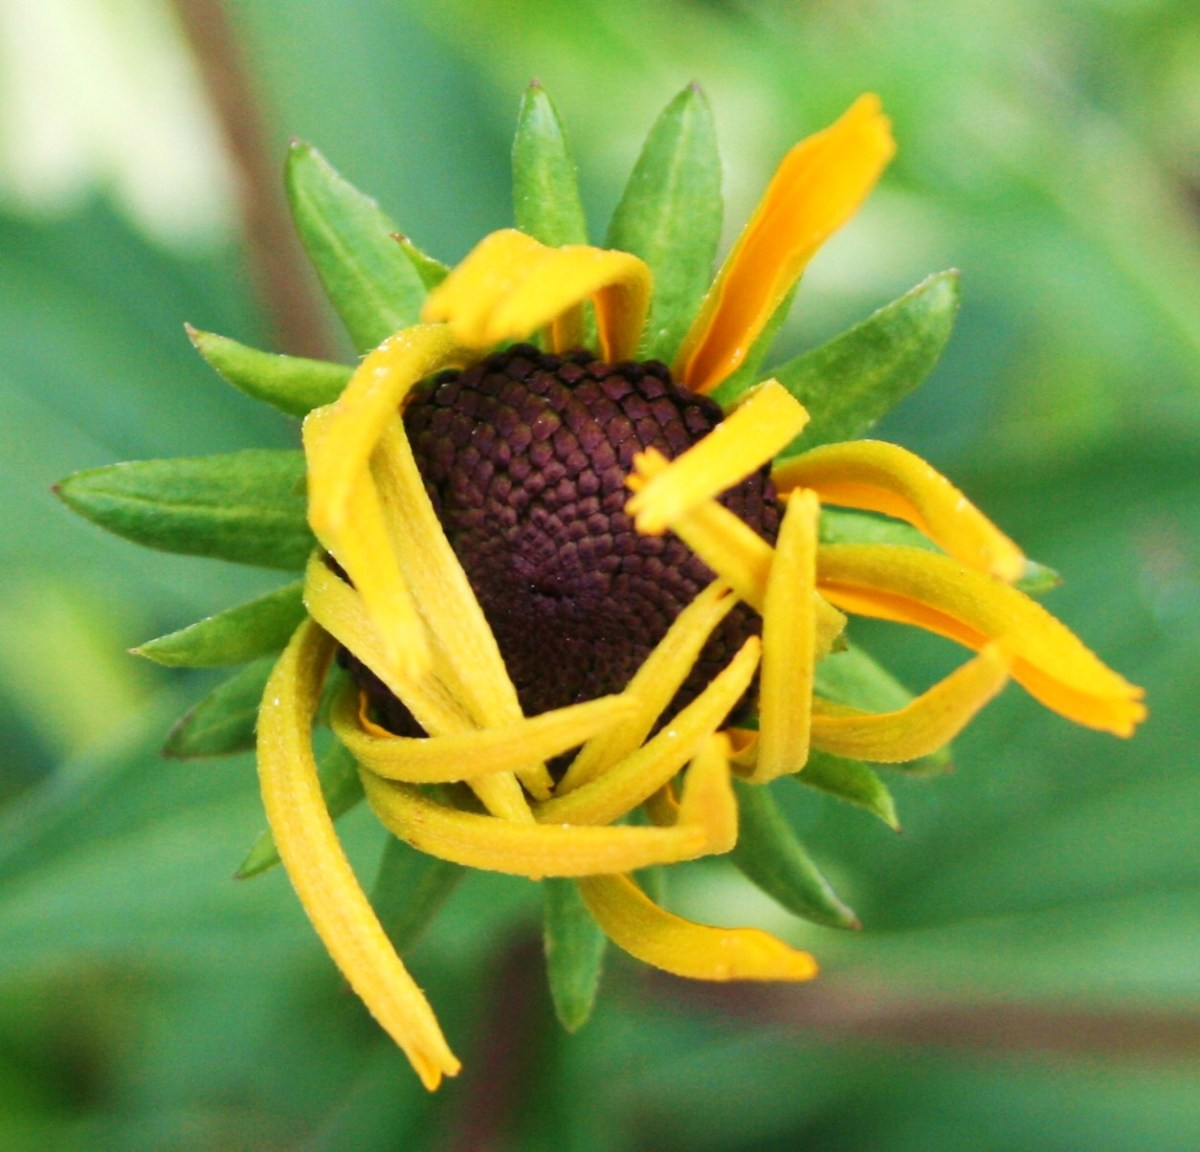 As they slowly unfold, Rudbeckia blossoms look like marzipan creations rather than real flowers.